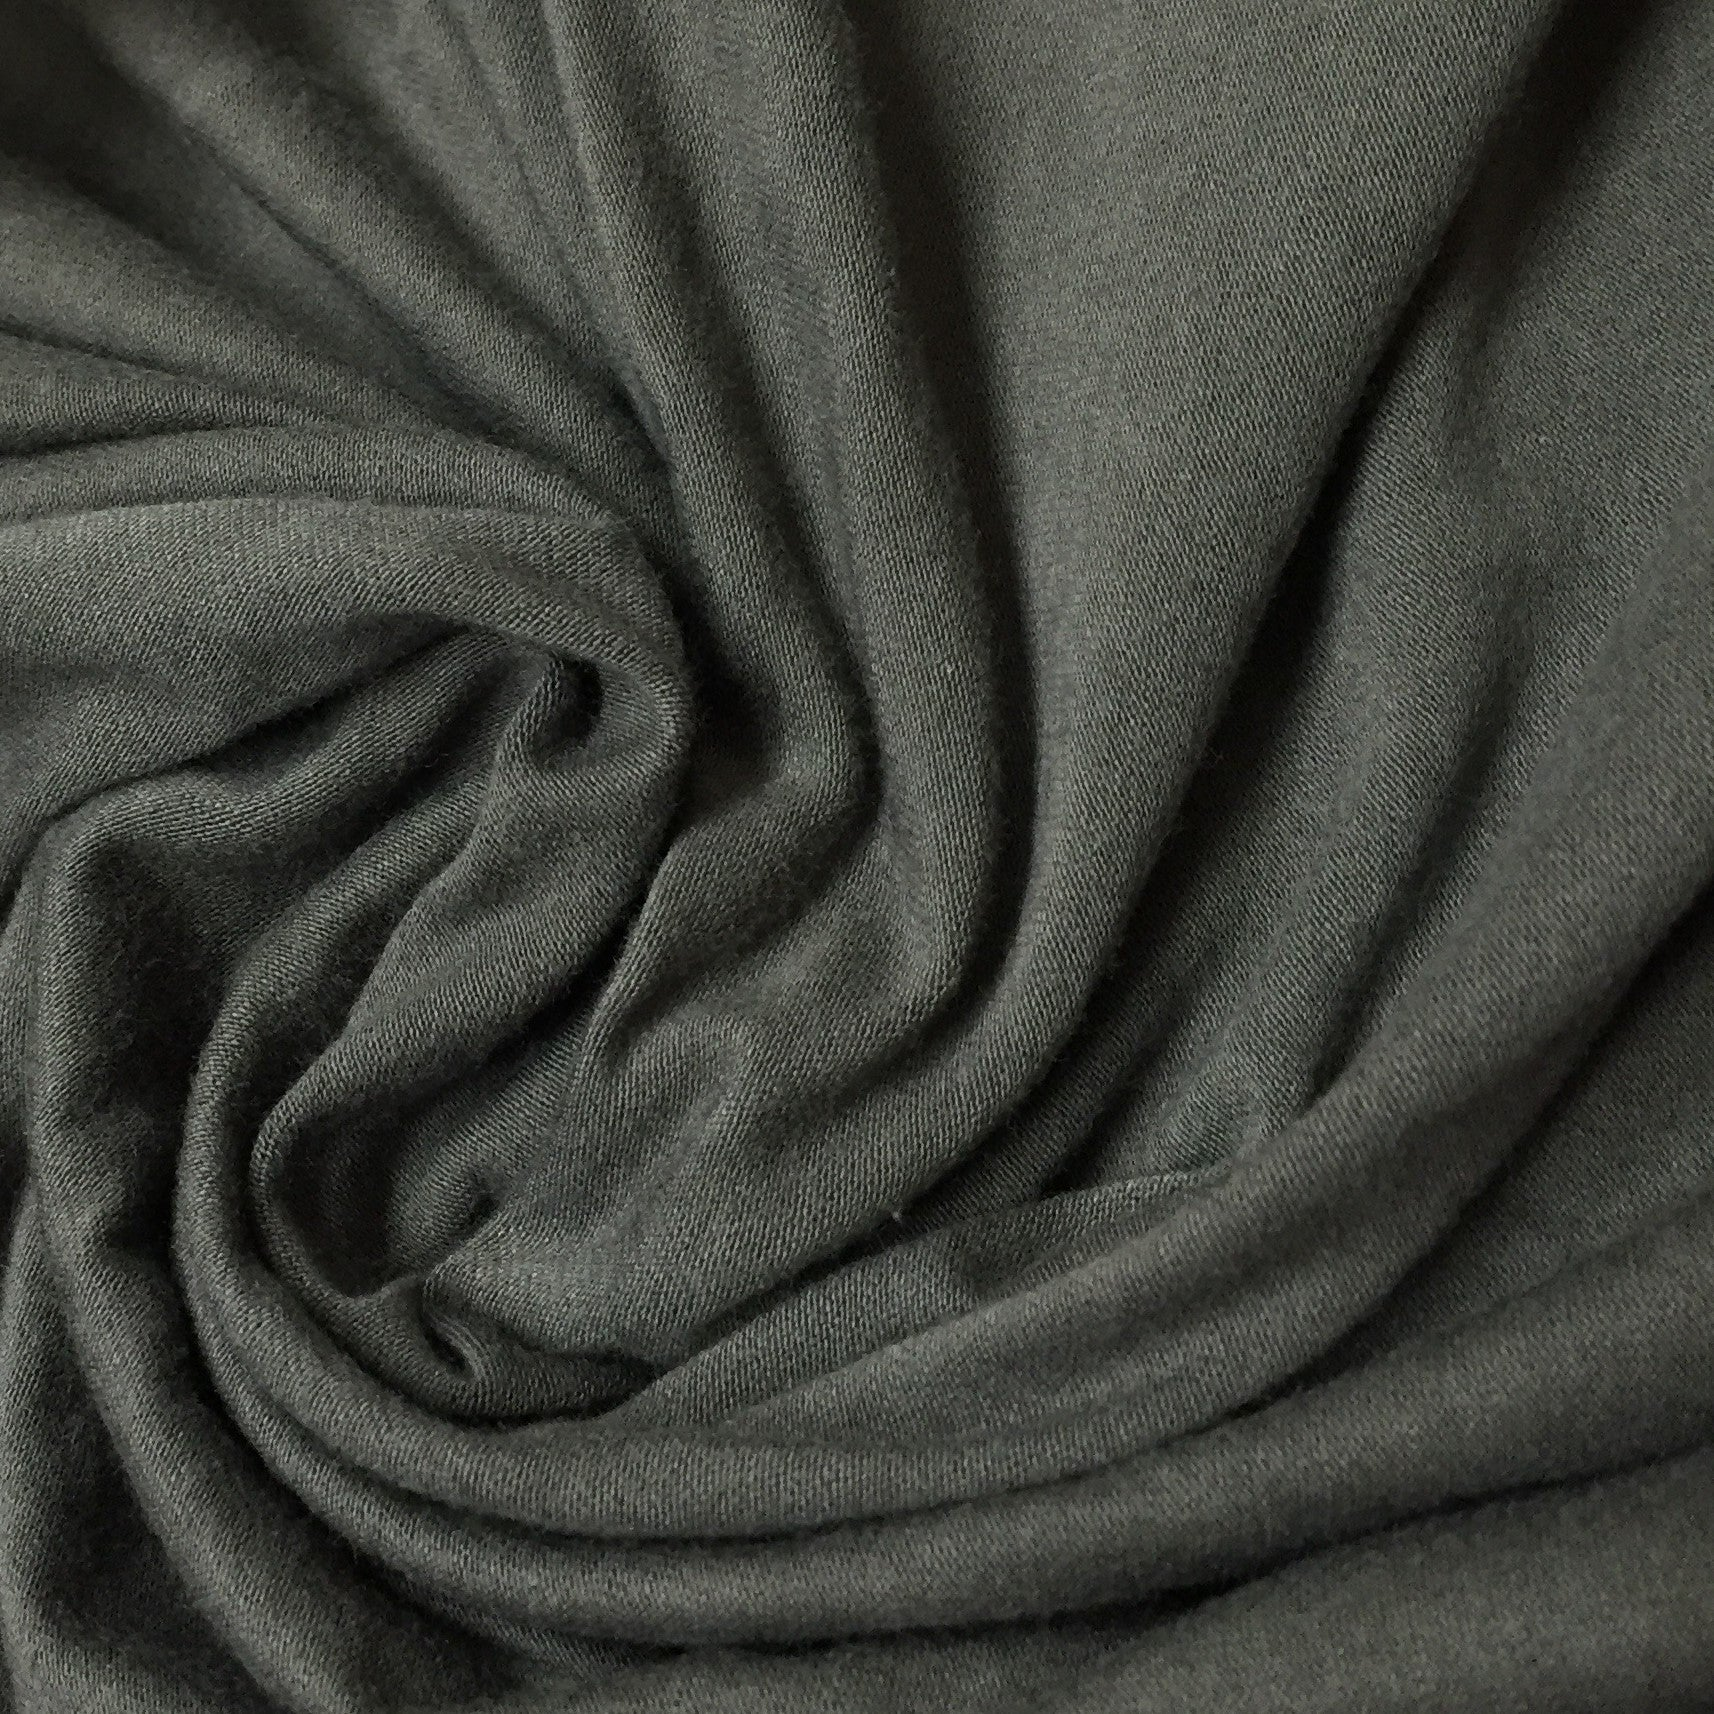 cca27e0e34f Darkest Gray Hemp Stretch Jersey | Nature's Fabrics